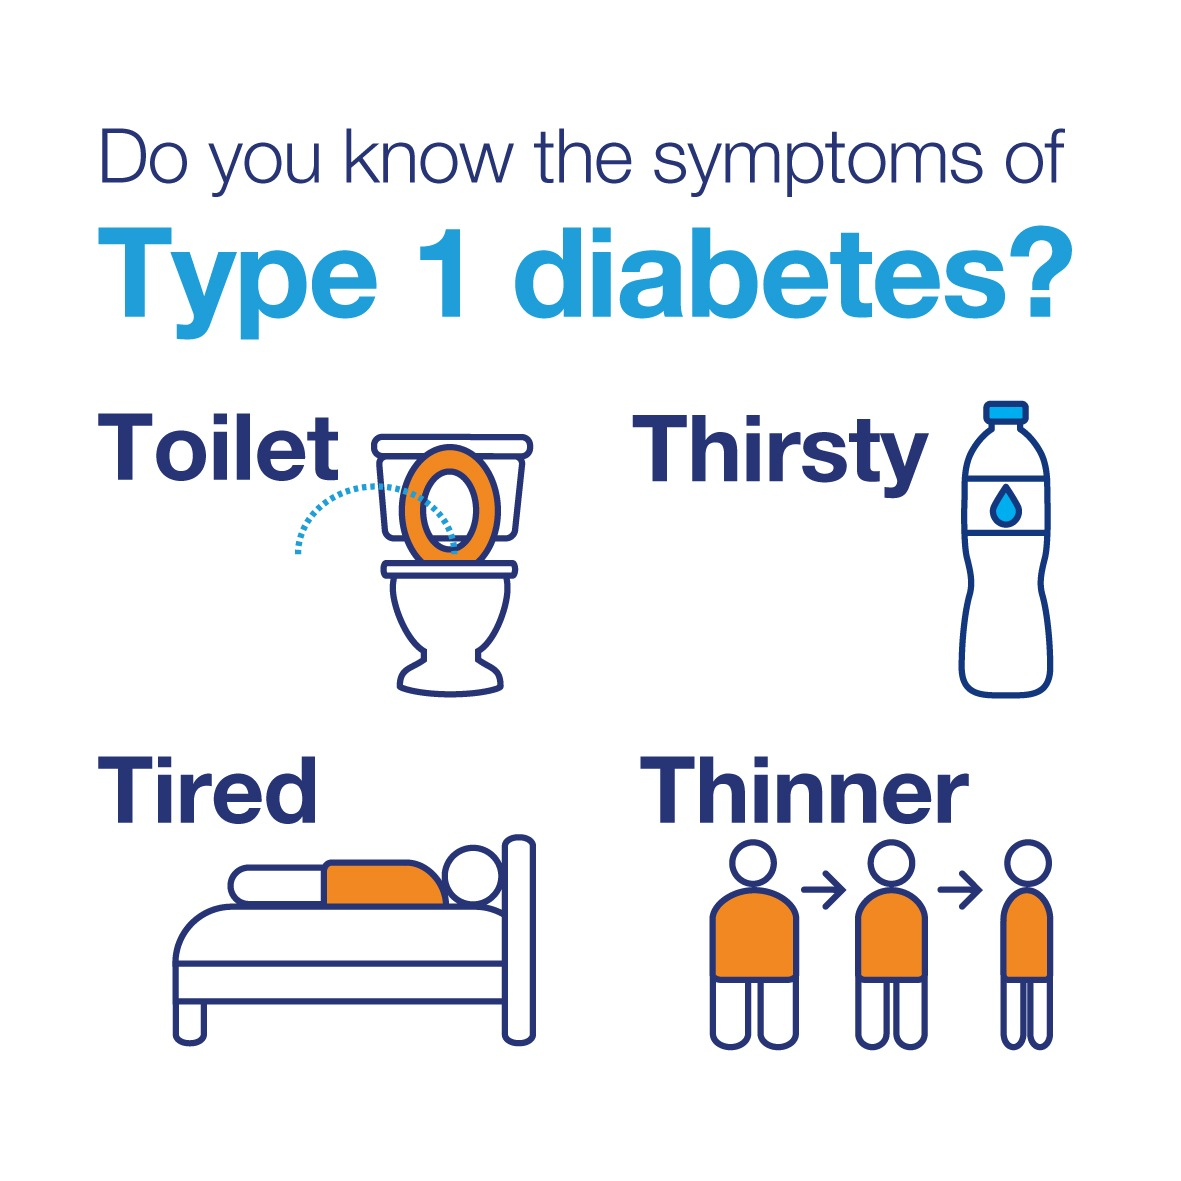 Symptoms of Type 1 diabetes